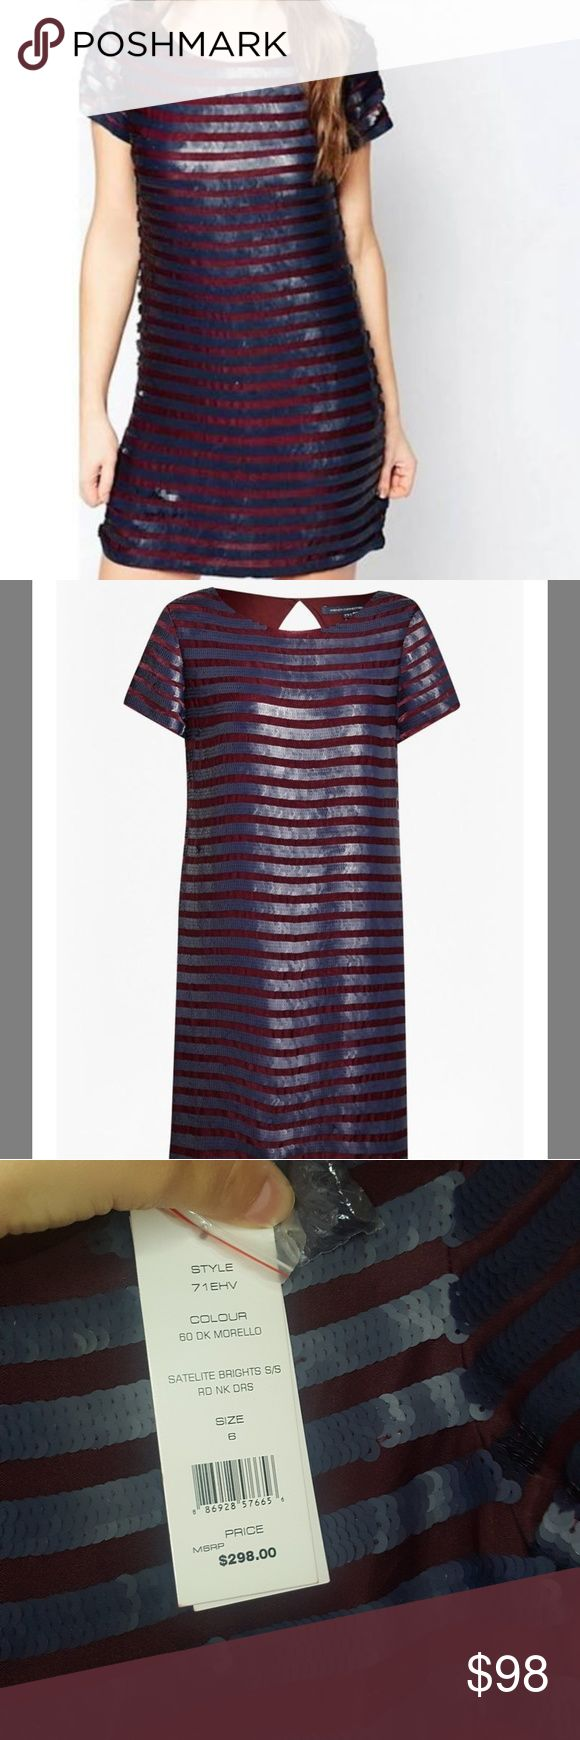 [French Connection] NWT Striped Sequin Dress Dress is a pretty burgundy purple color and sequined stripes are a gray blue color.   Open to offers! Bundle and save 20%! French Connection Dresses